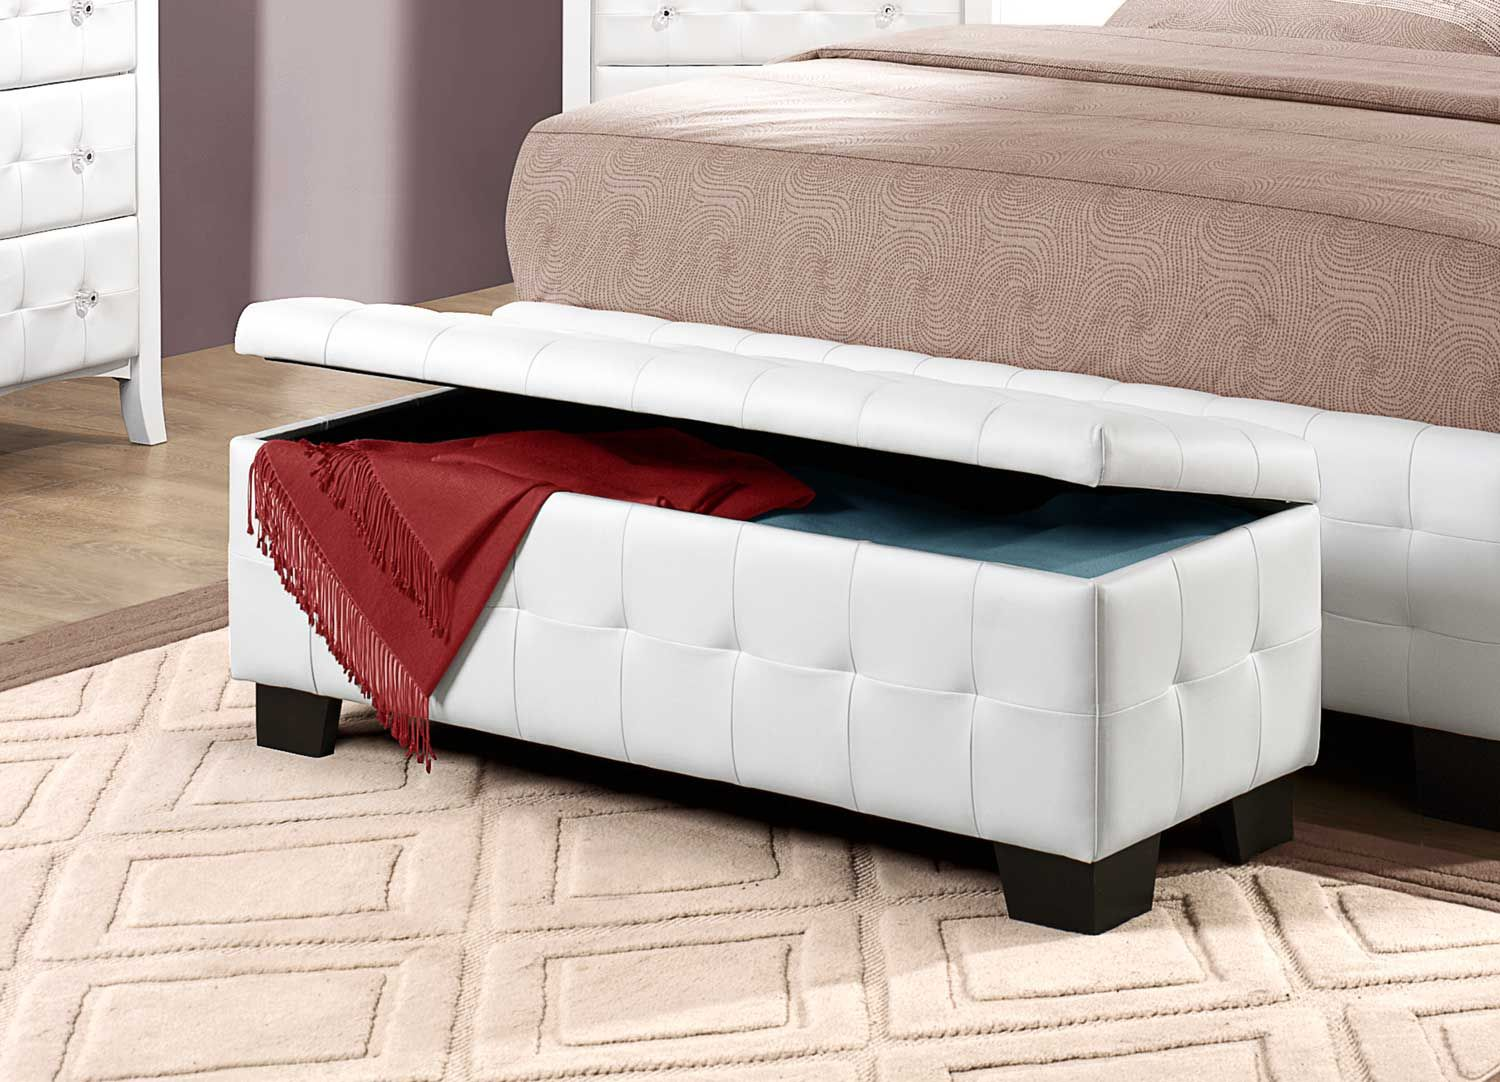 Homelegance Sparkle Upholstered Storage Bench Storage Bench Bedroom White Storage Bench Bed Bench Storage